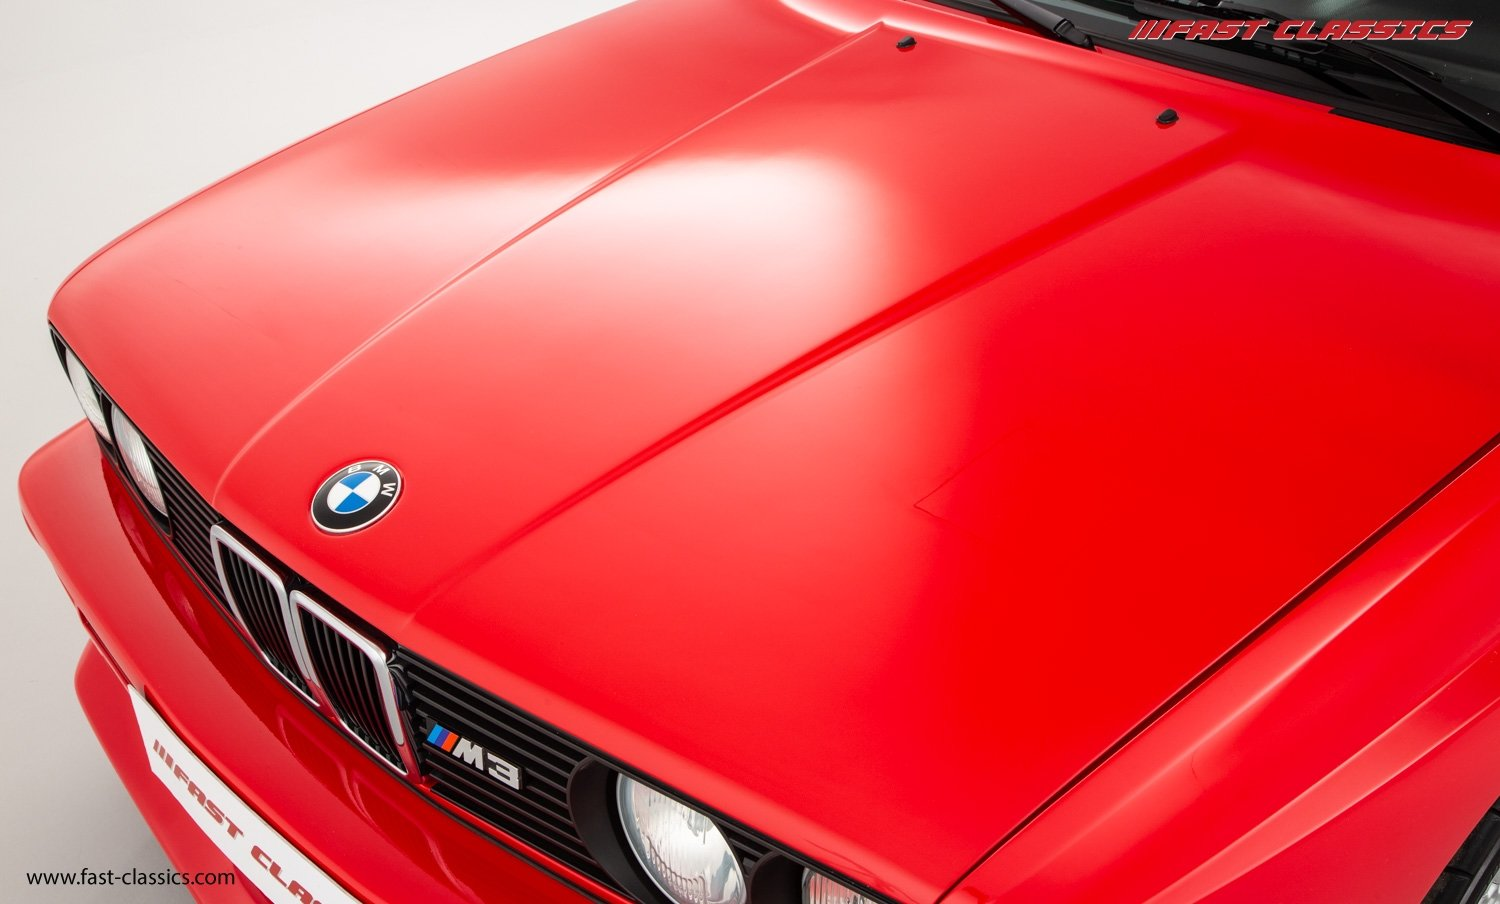 1988 BMW E30 M3 EVO 2 // GERMAN SUPPLIED // NUT & BOLT RESTO For Sale (picture 3 of 22)